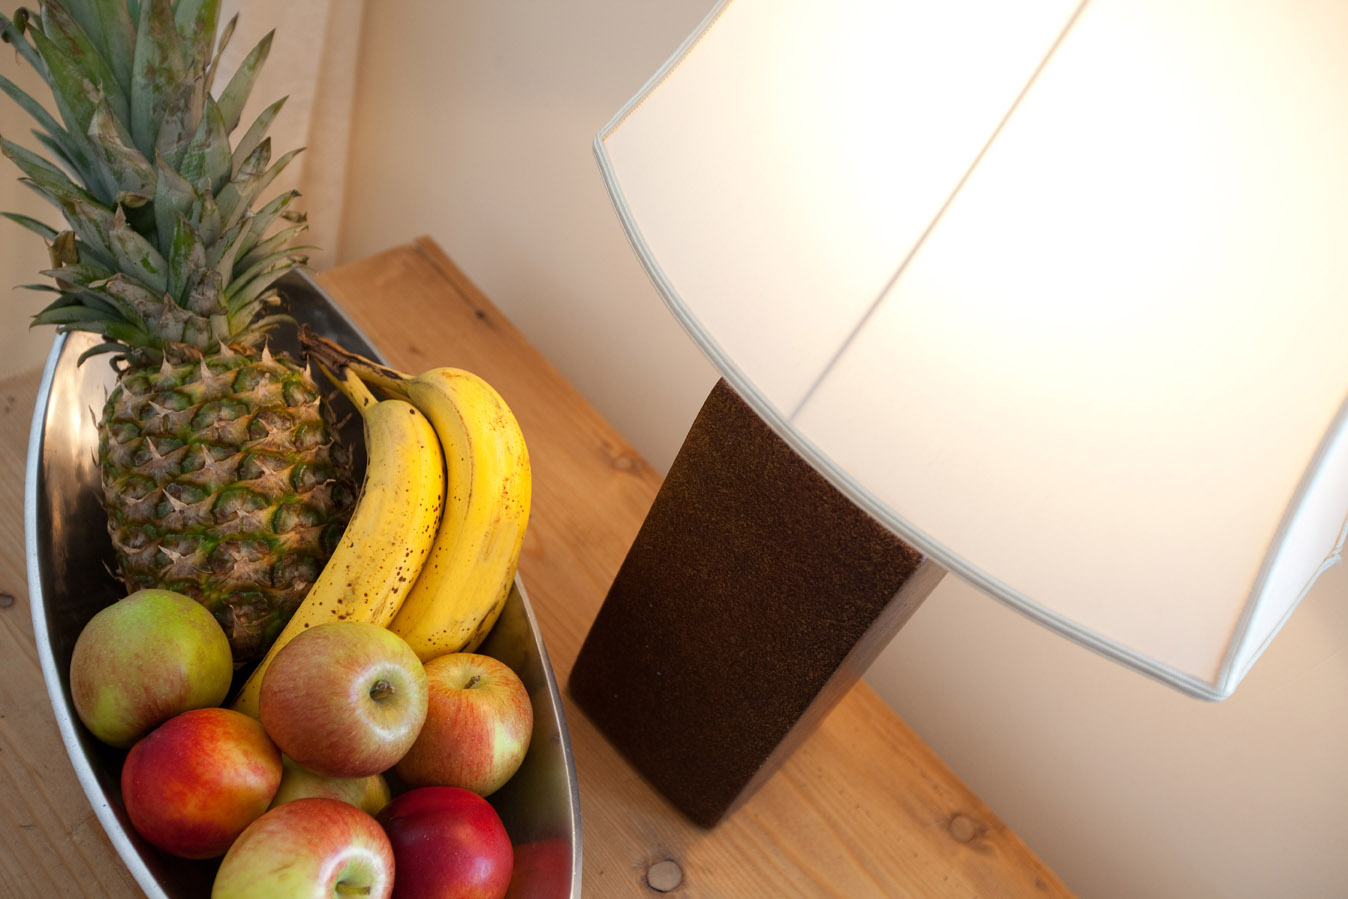 Fruit and lamp